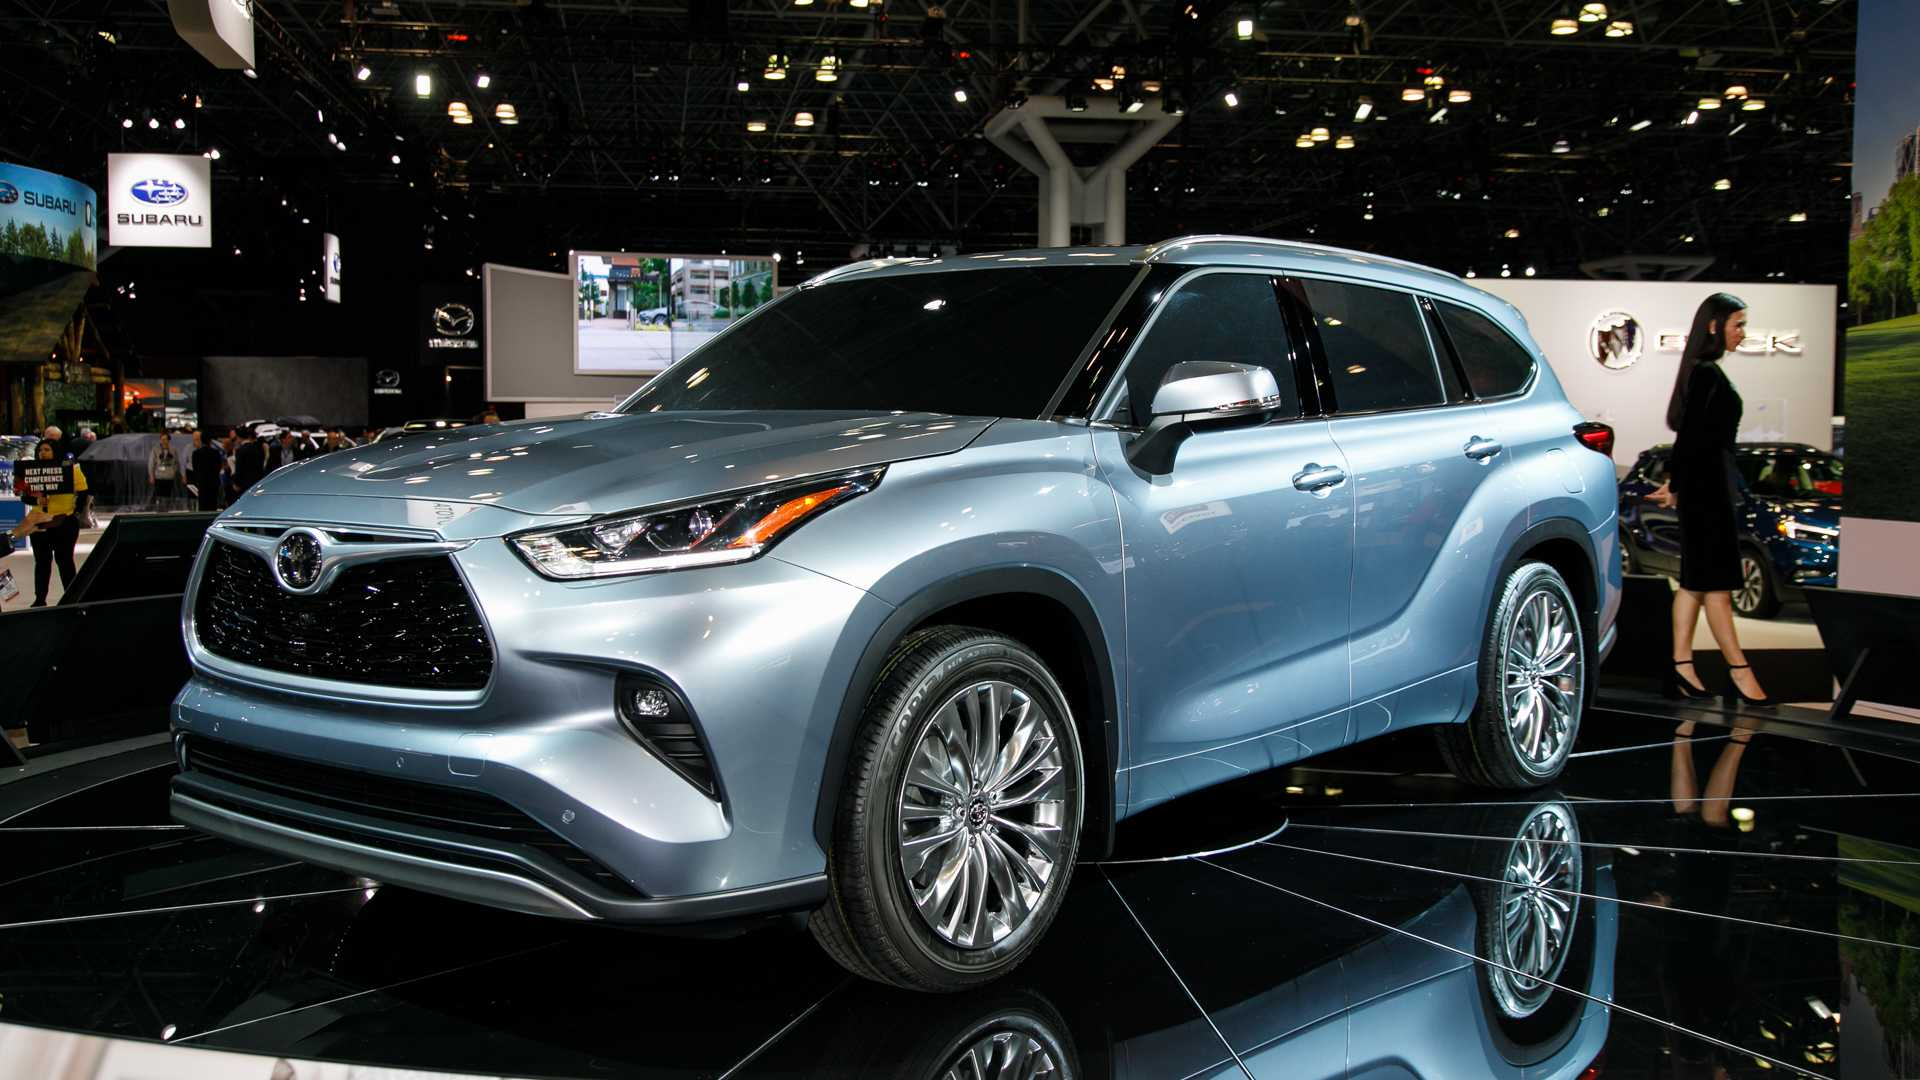 32 Best Review Toyota Kluger 2020 Specs and Review with Toyota Kluger 2020